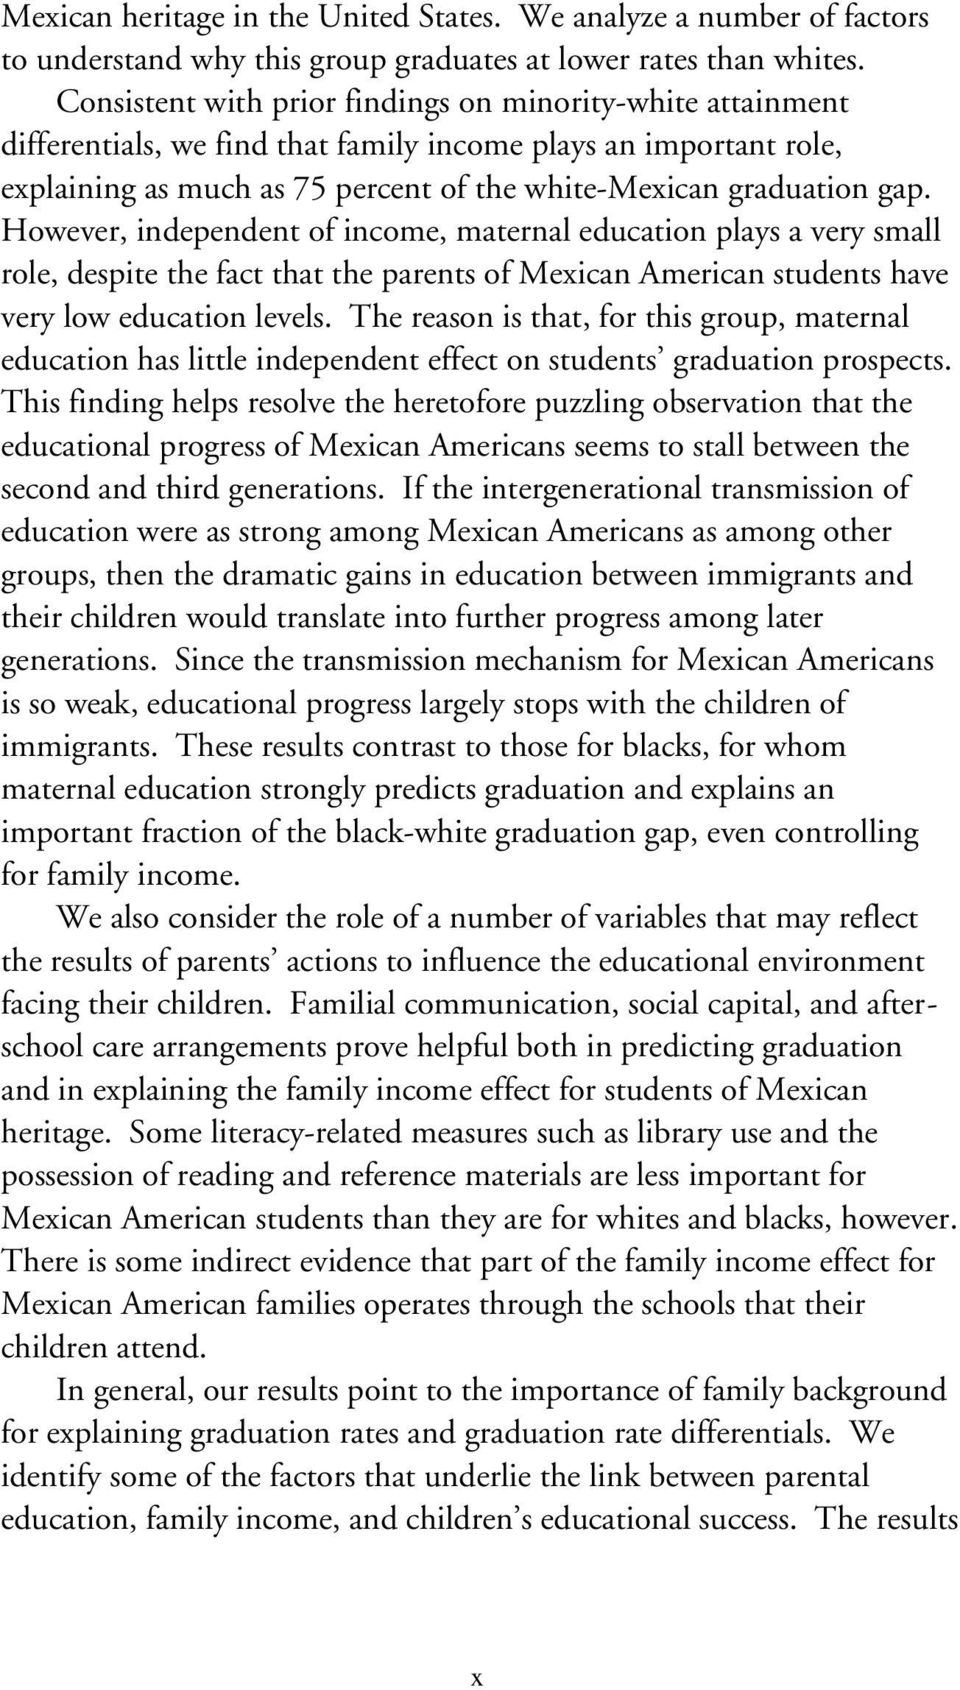 However, independent of income, maternal education plays a very small role, despite the fact that the parents of Mexican American students have very low education levels.